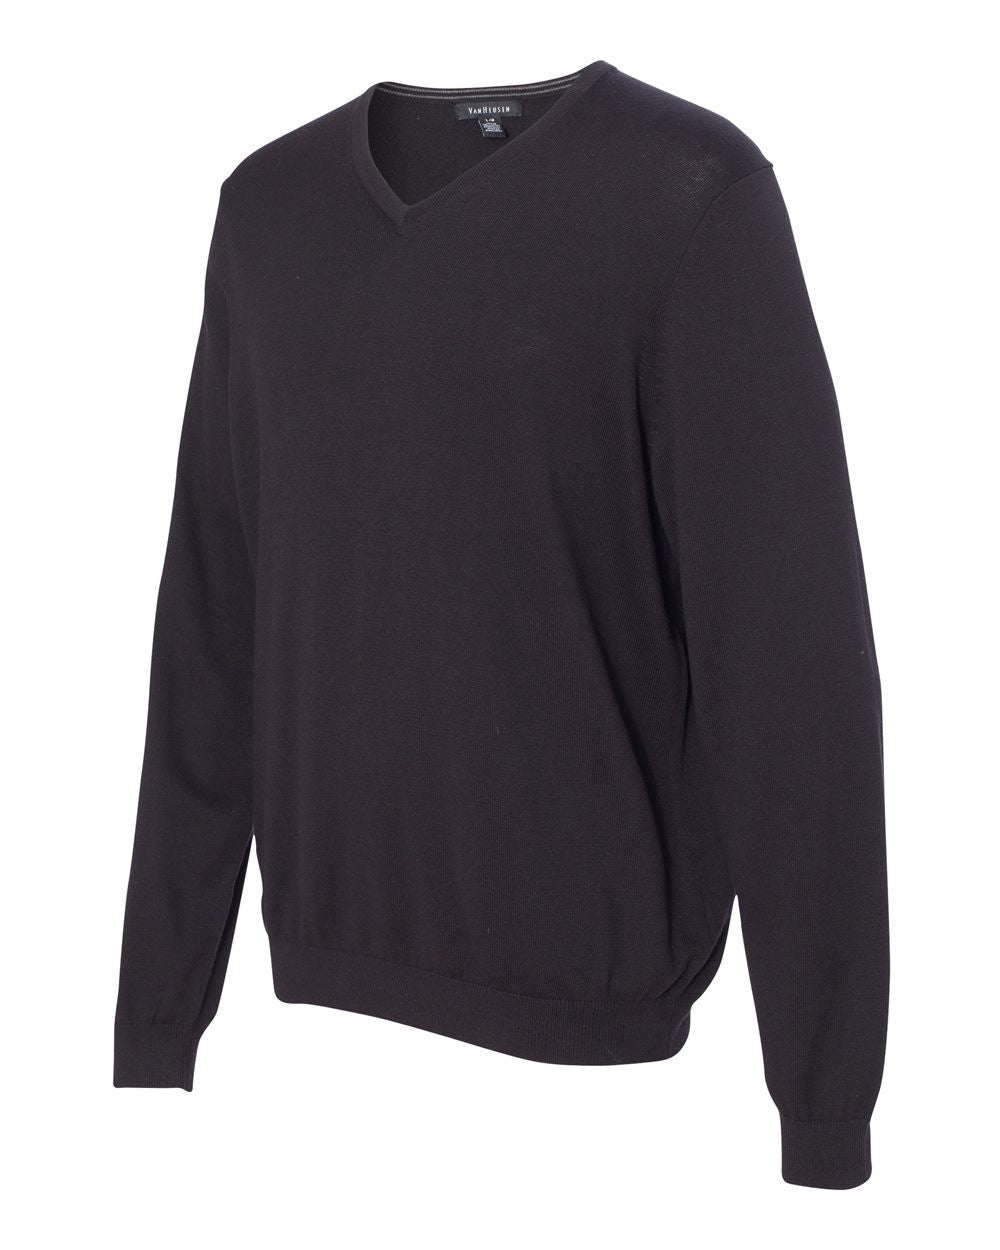 V neck Sweater for Men by Van Heusen